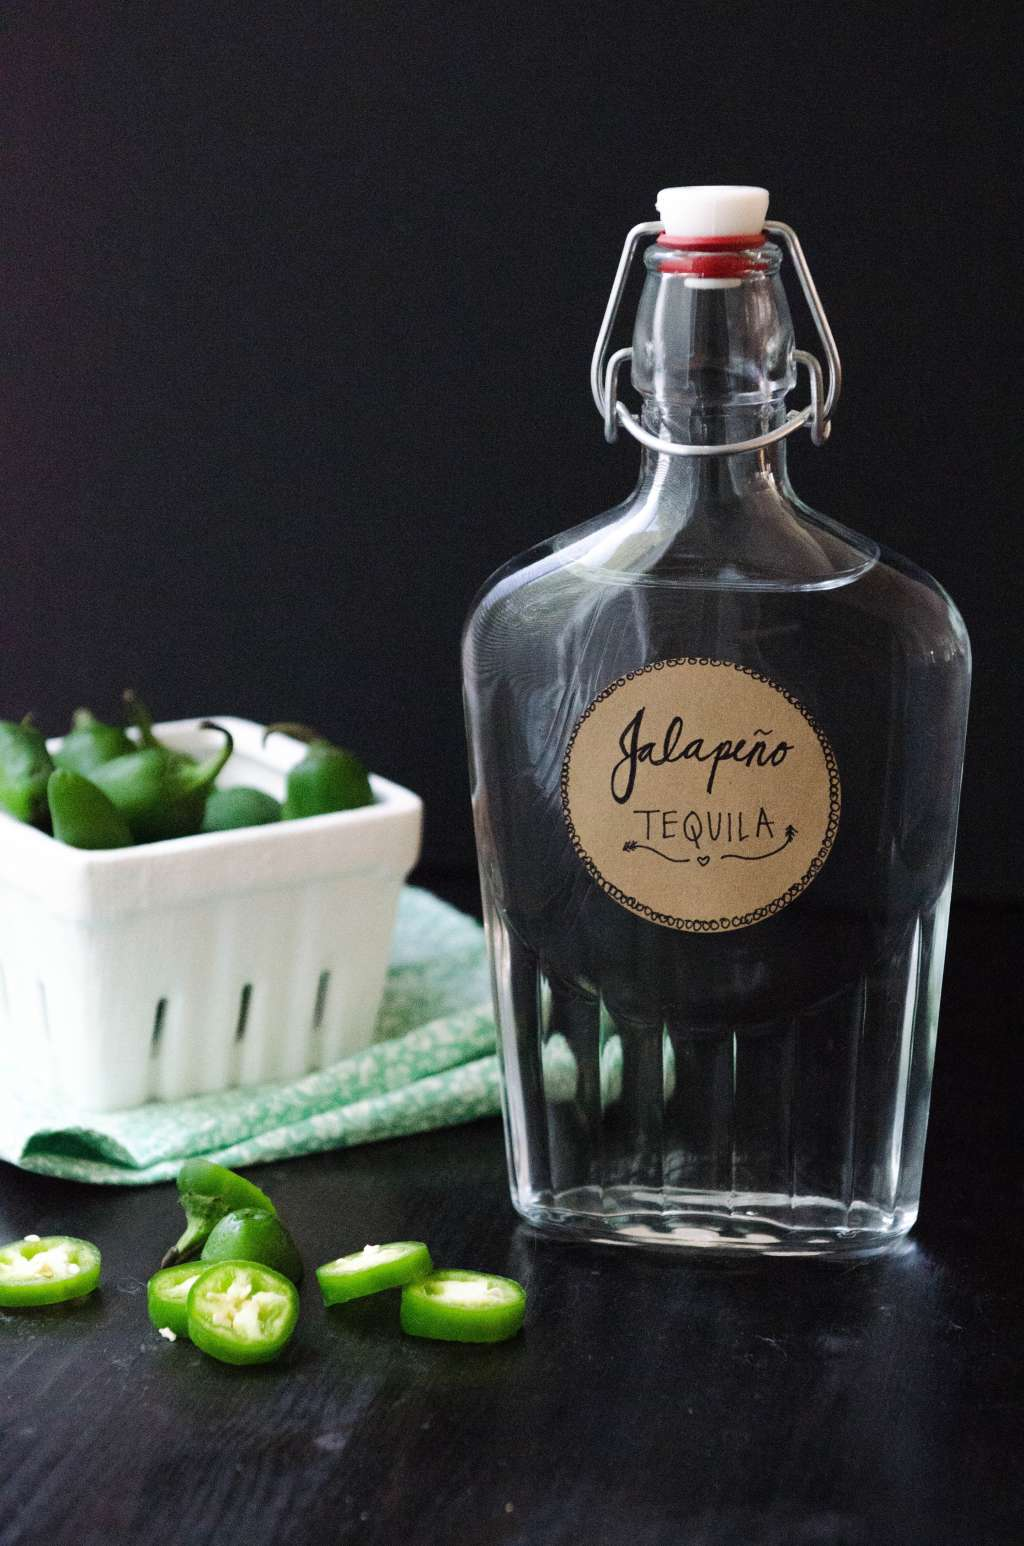 A Last-Minute Gift for Your Host: Jalapeño-Infused Tequila!